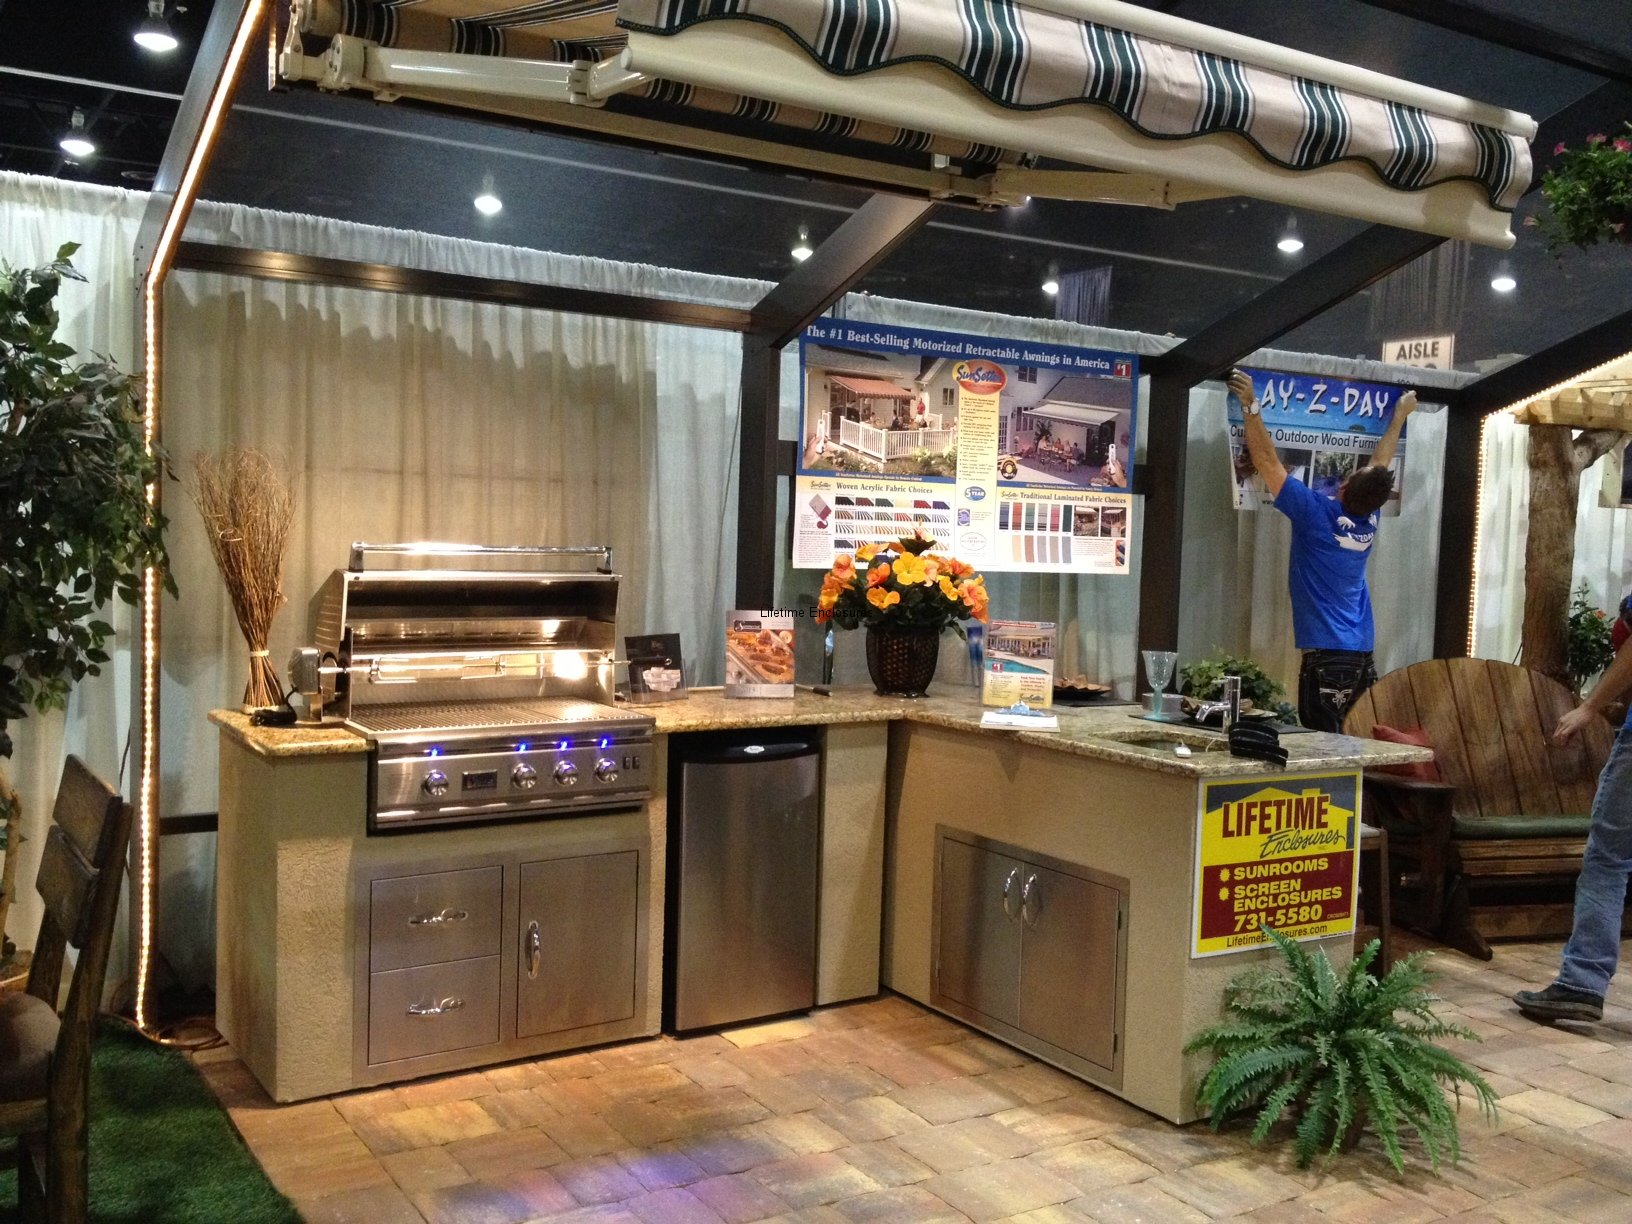 Outdoor kitchens portfolio lifetime enclosures - Show picture of kitchen ...